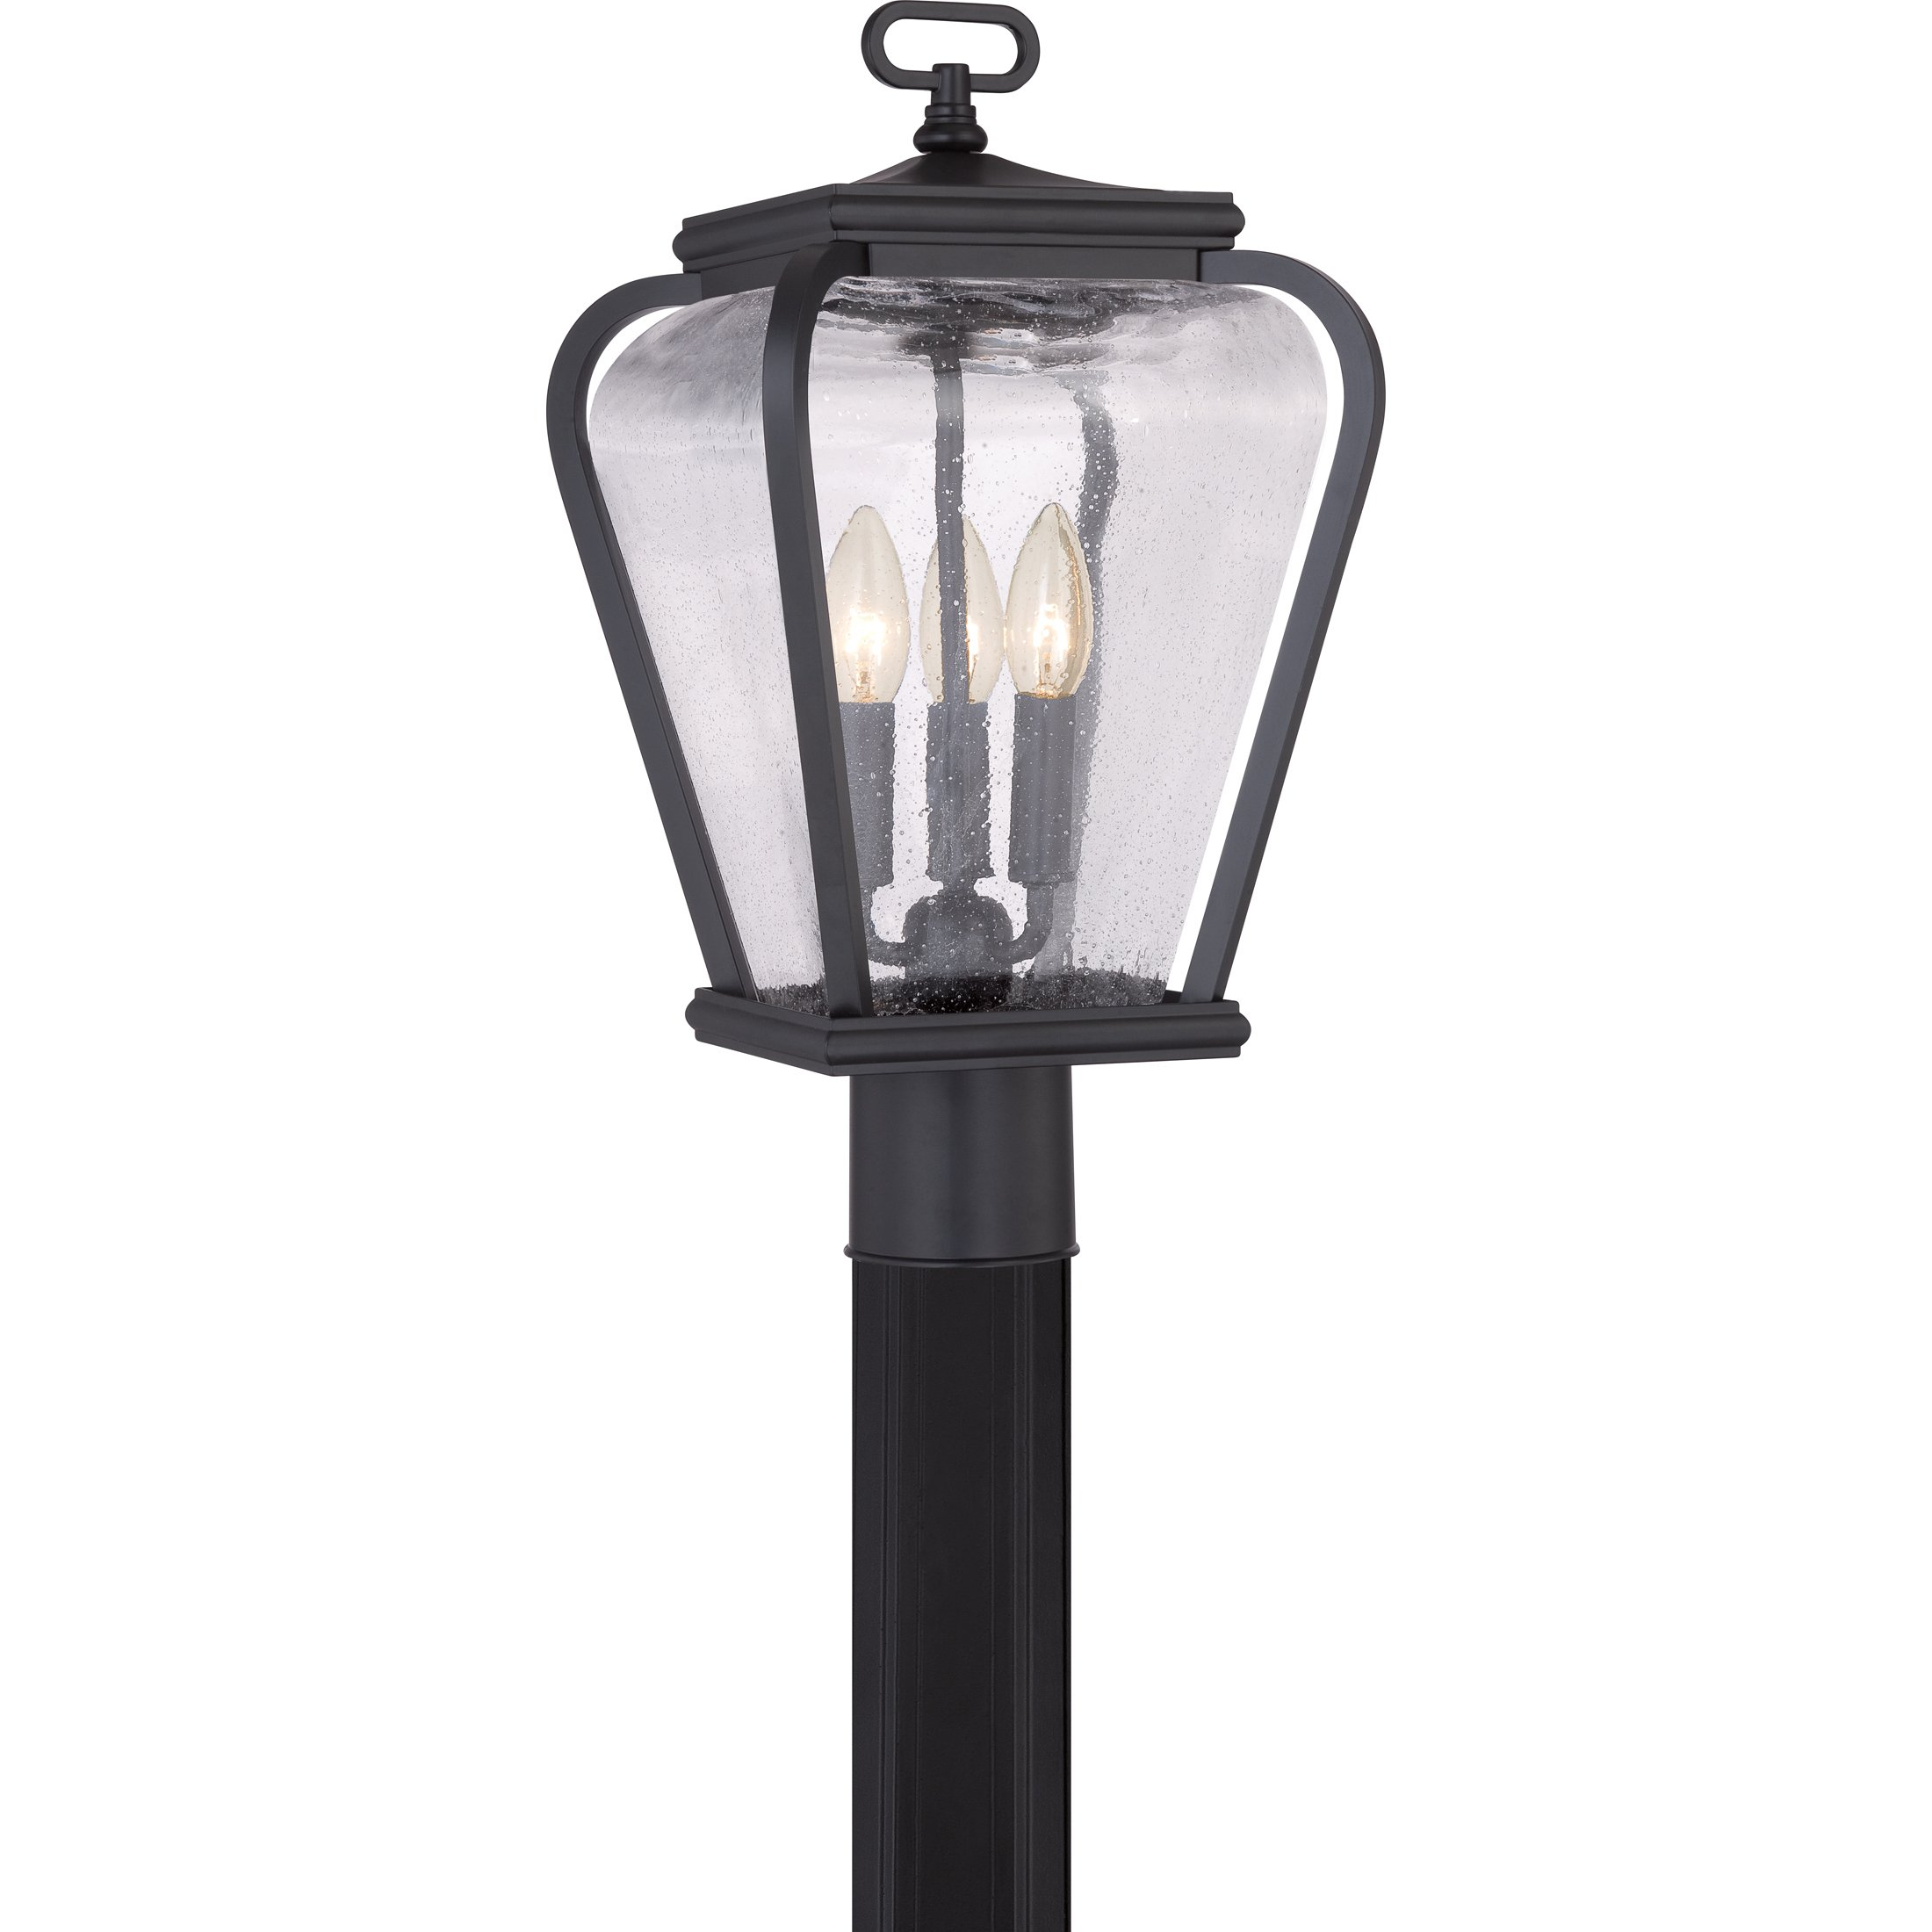 Quoizel PRV9009K 3-Light Province Outdoor Lantern in Mystic Black